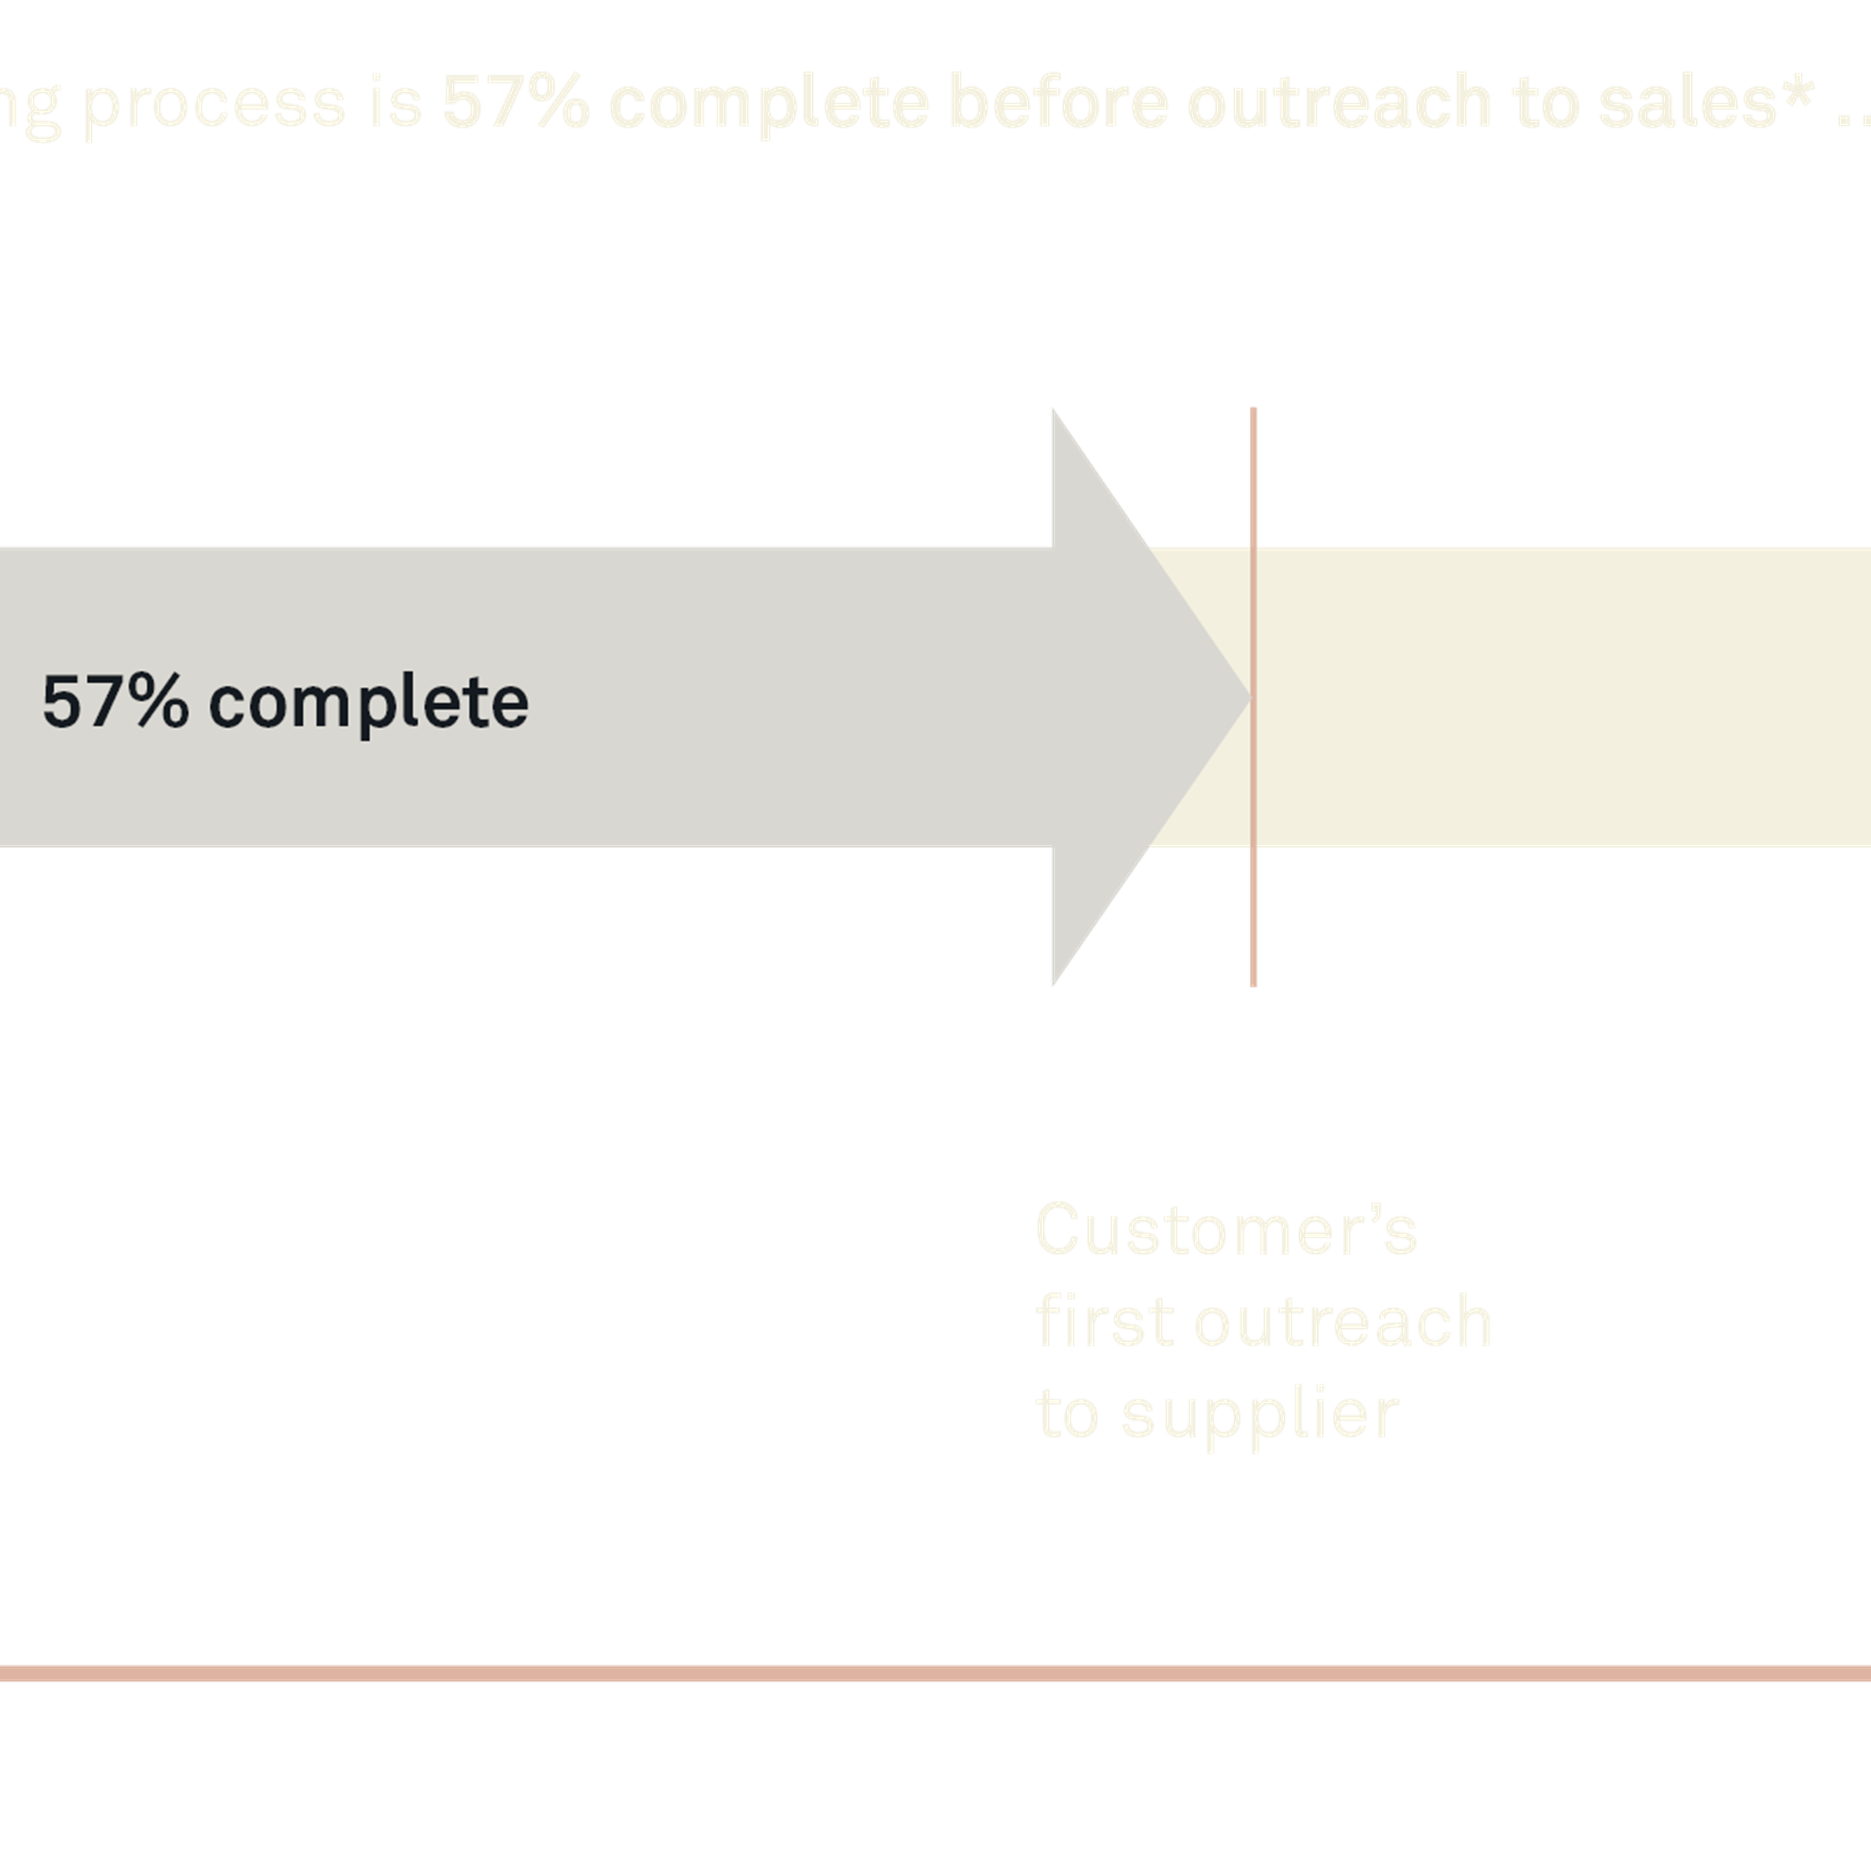 Customers buying process is 57 percent complete before outreach to sales